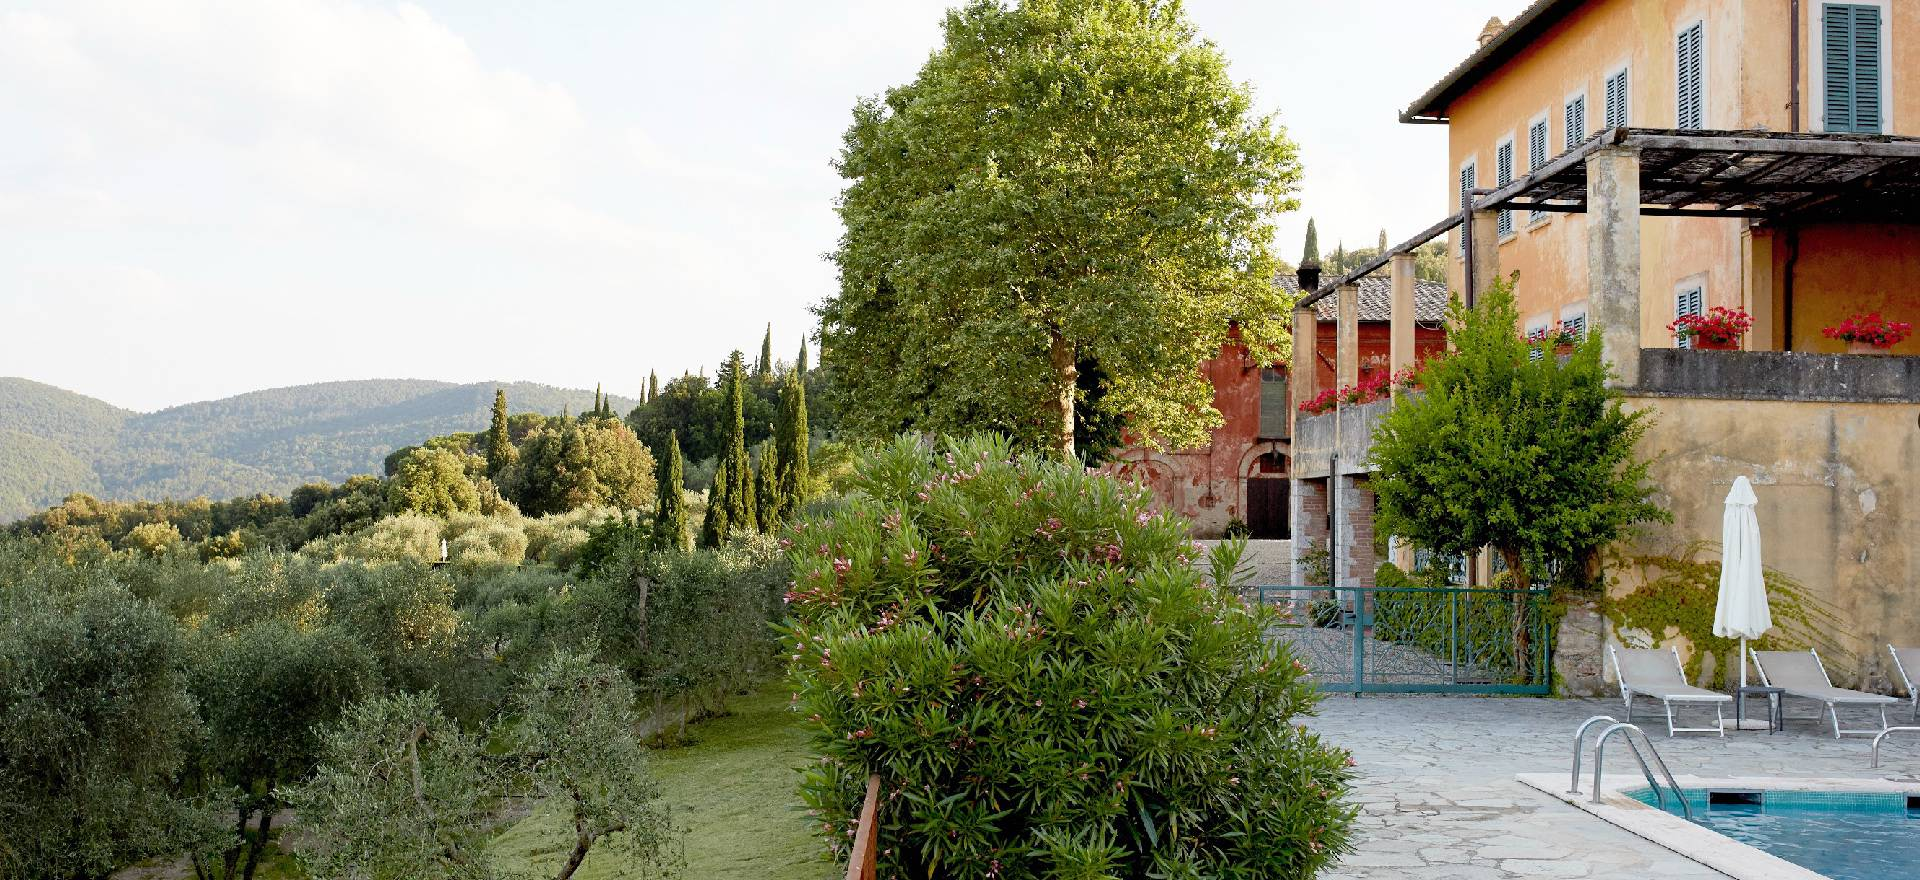 Agriturismo Tuscany Hidden gem in Tuscany near Siena